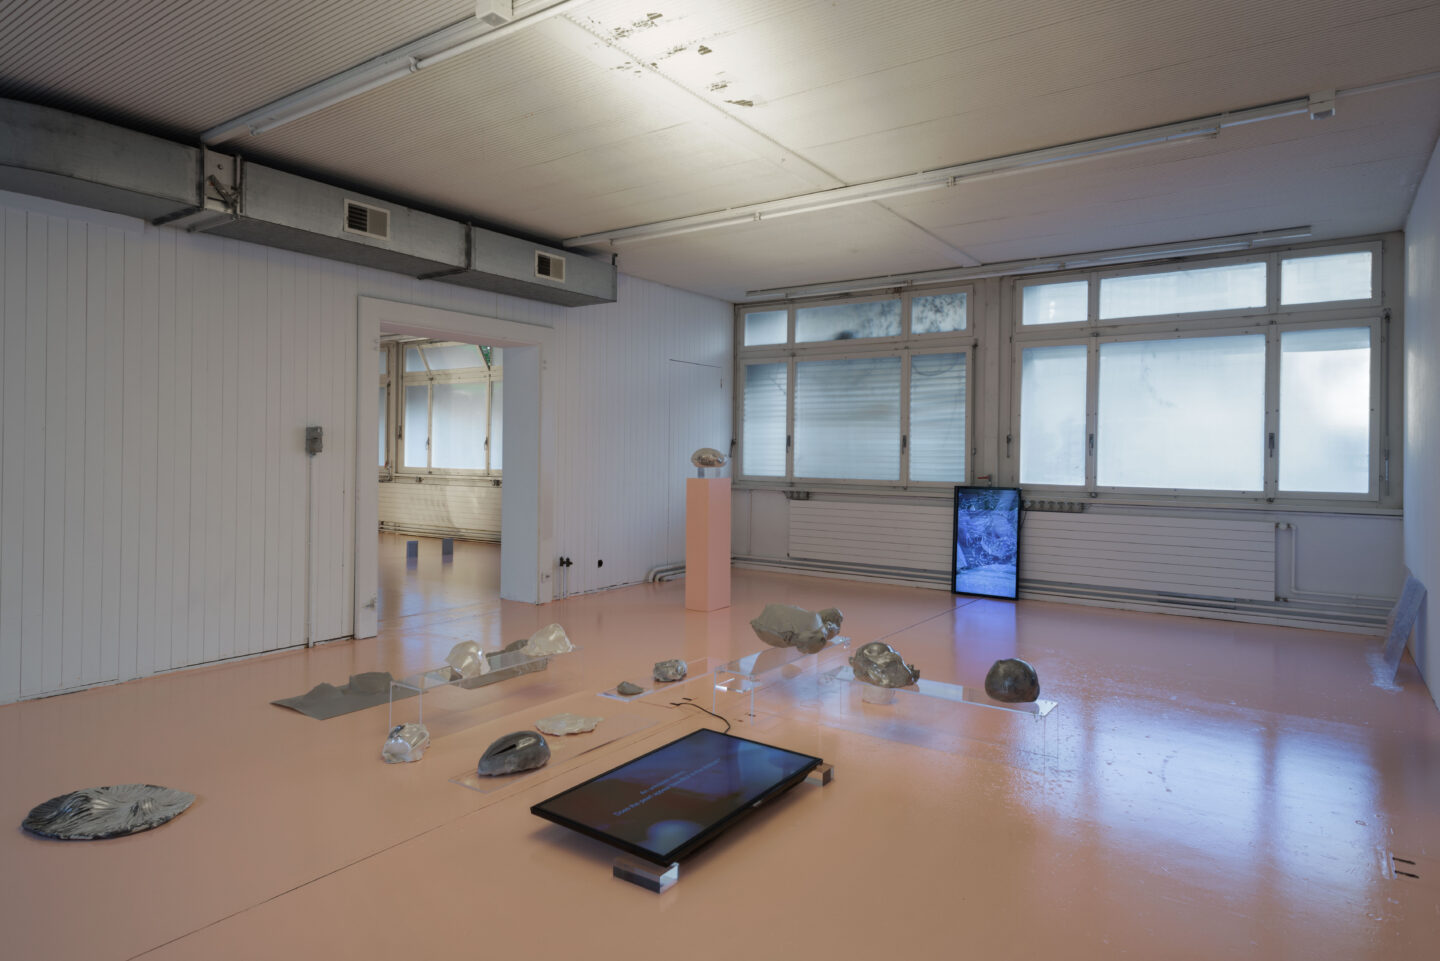 Exhibition View Ceylan Öztrük Soloshow «Am a mollusk, too; re/producing tangents» at Longtang, Zurich, 2020 / Photo: Flavio Karrer / Courtesy: the artist and Longtang